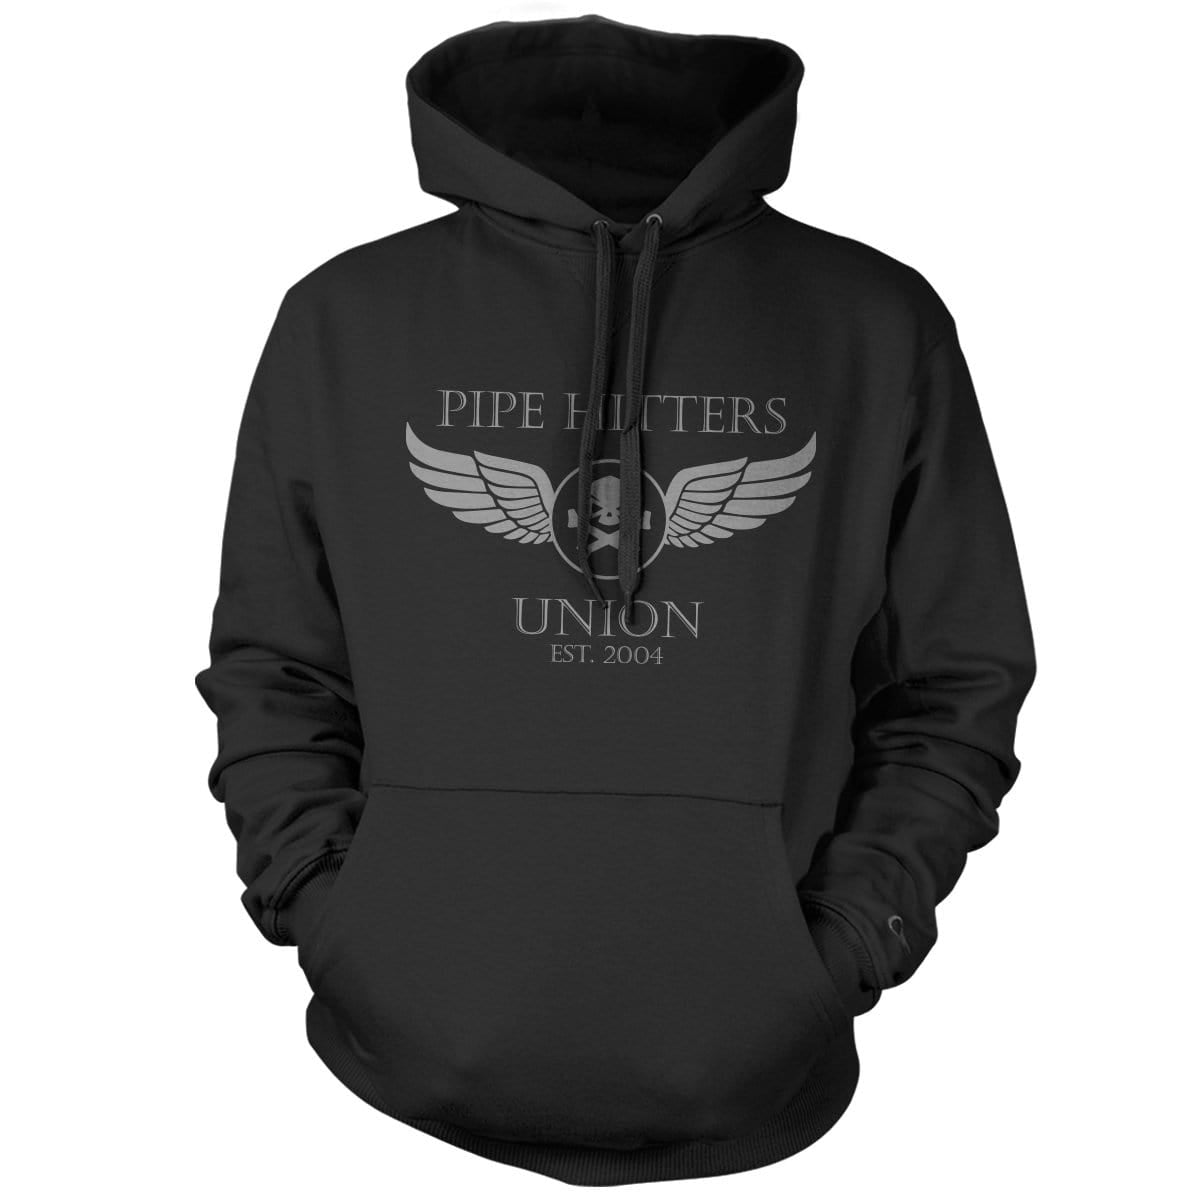 Wings Hoodie - Black - Hoodies - Pipe Hitters Union